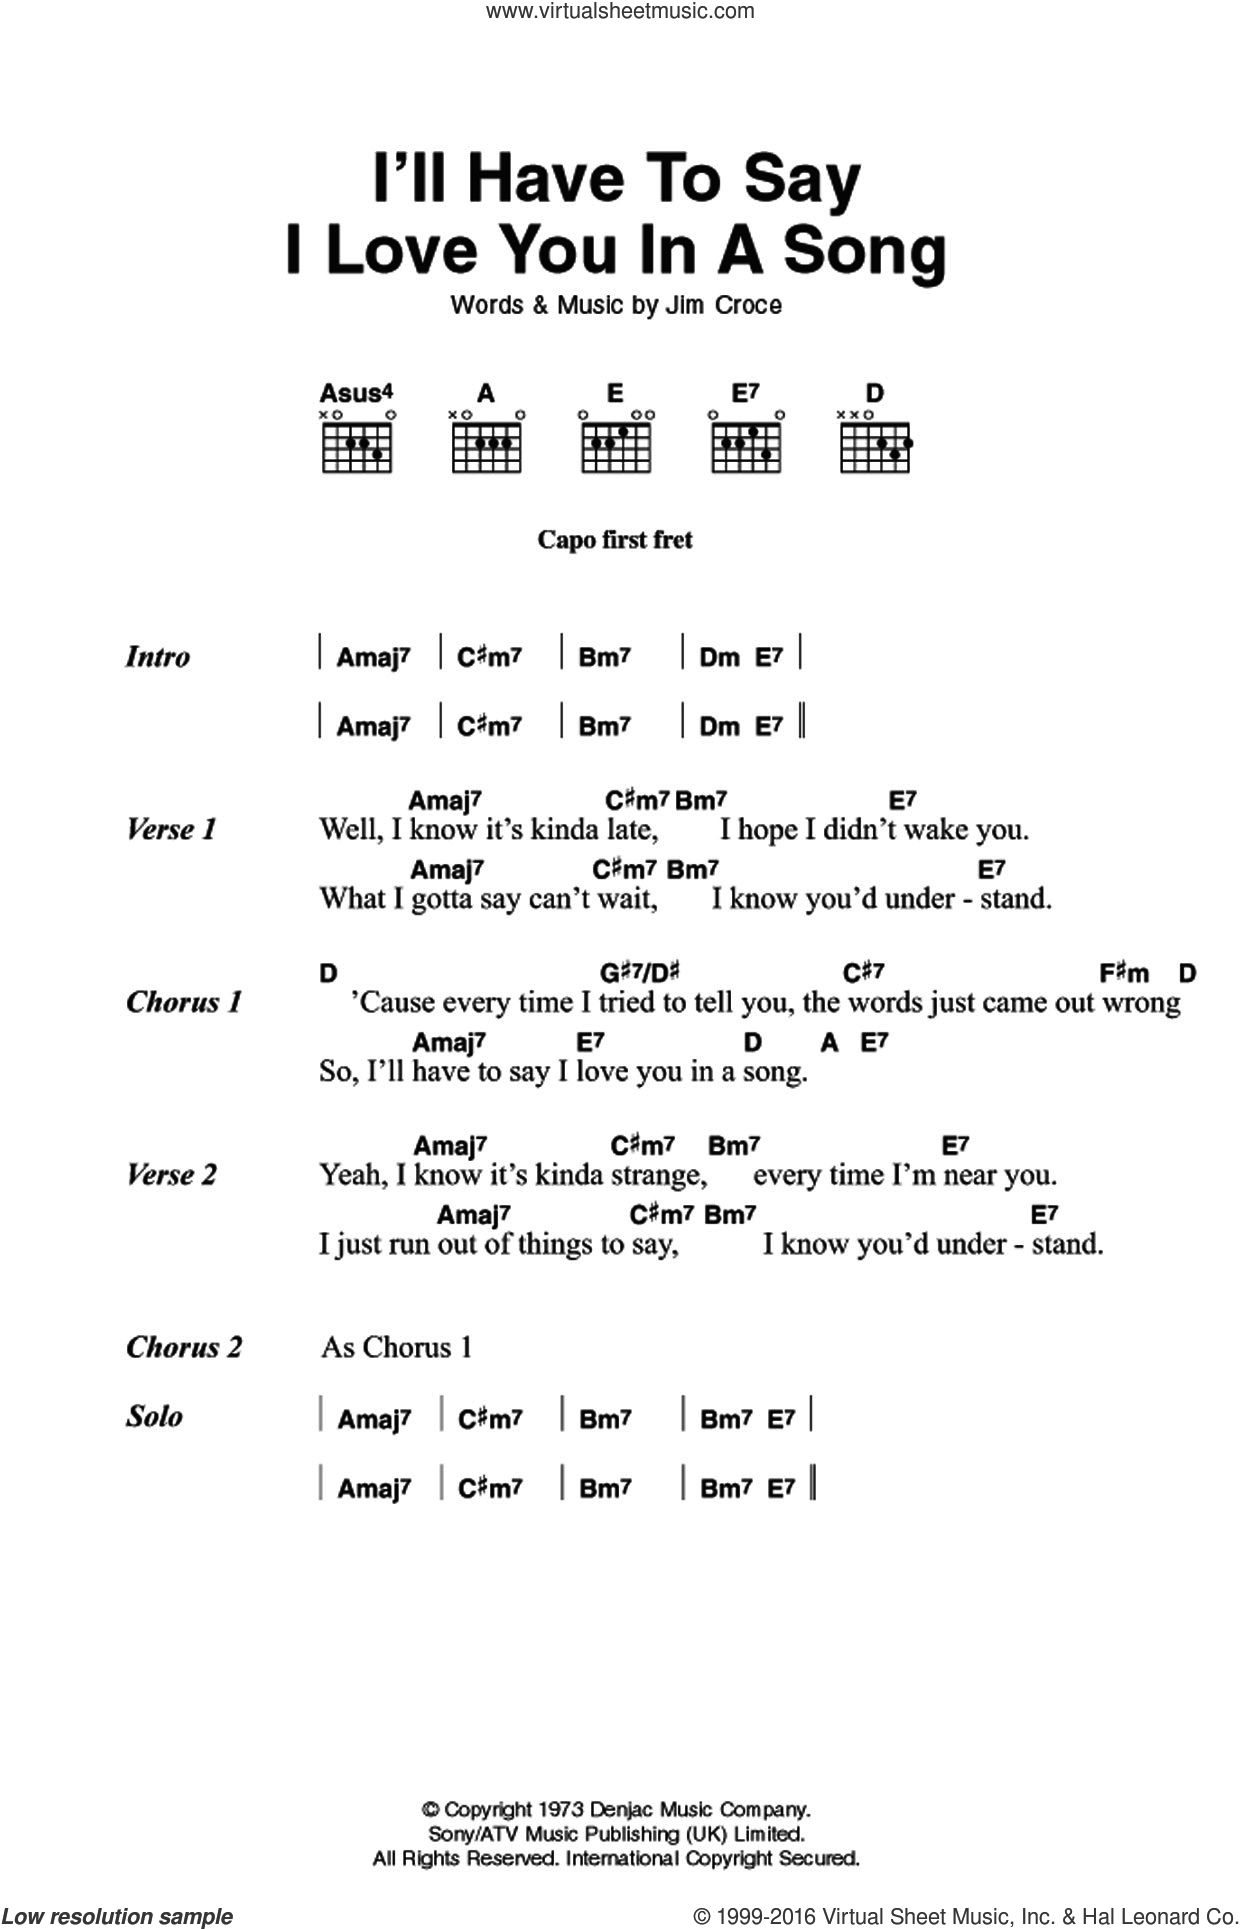 I'll Have To Say I Love You In A Song sheet music for guitar (chords) by Jim Croce, intermediate skill level